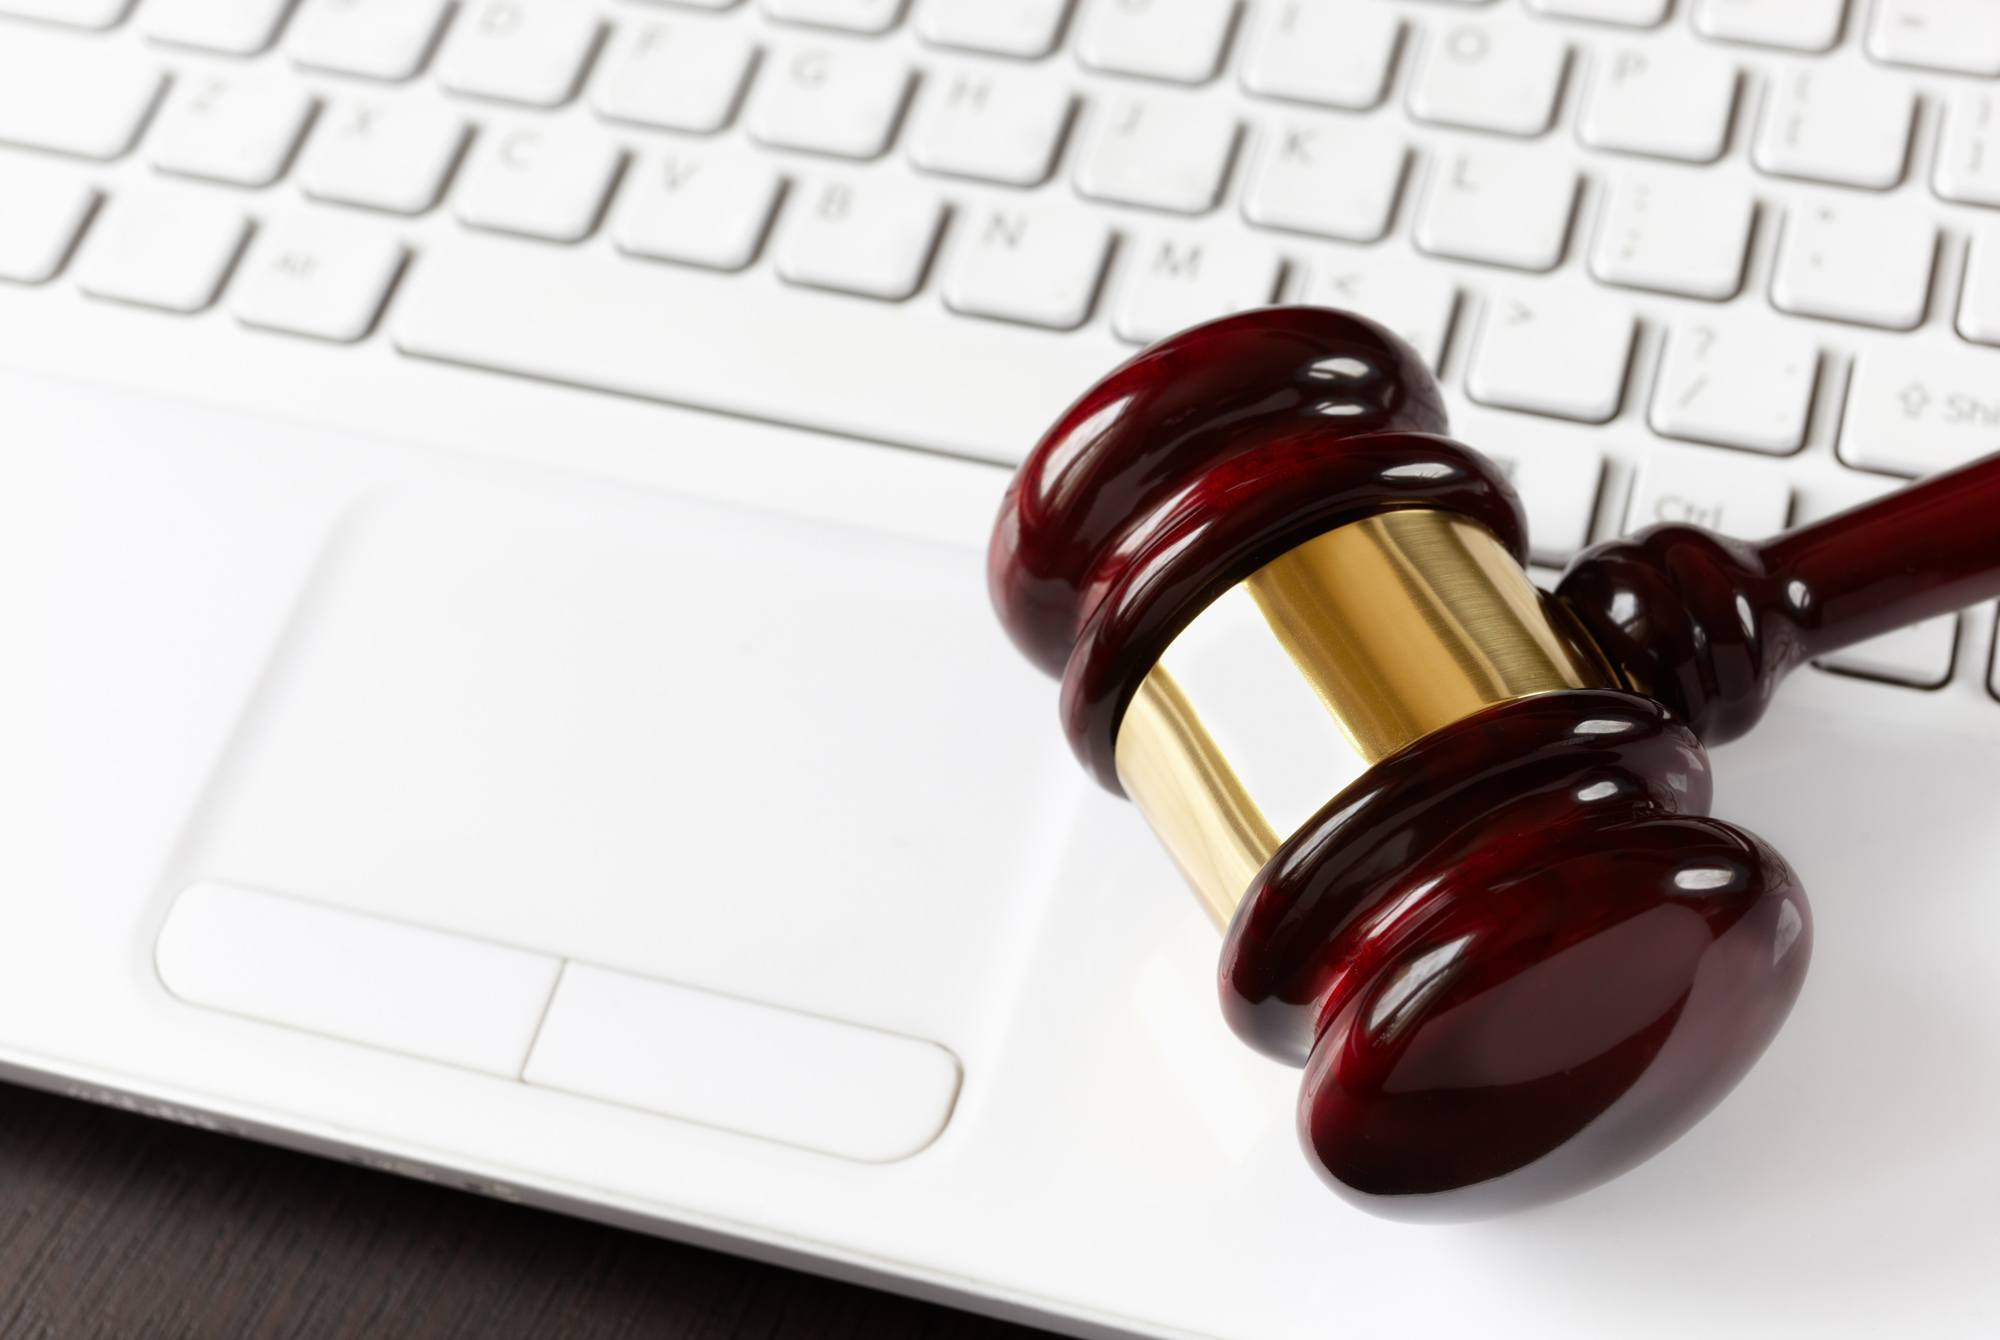 Avoiding Online Auction Fraud